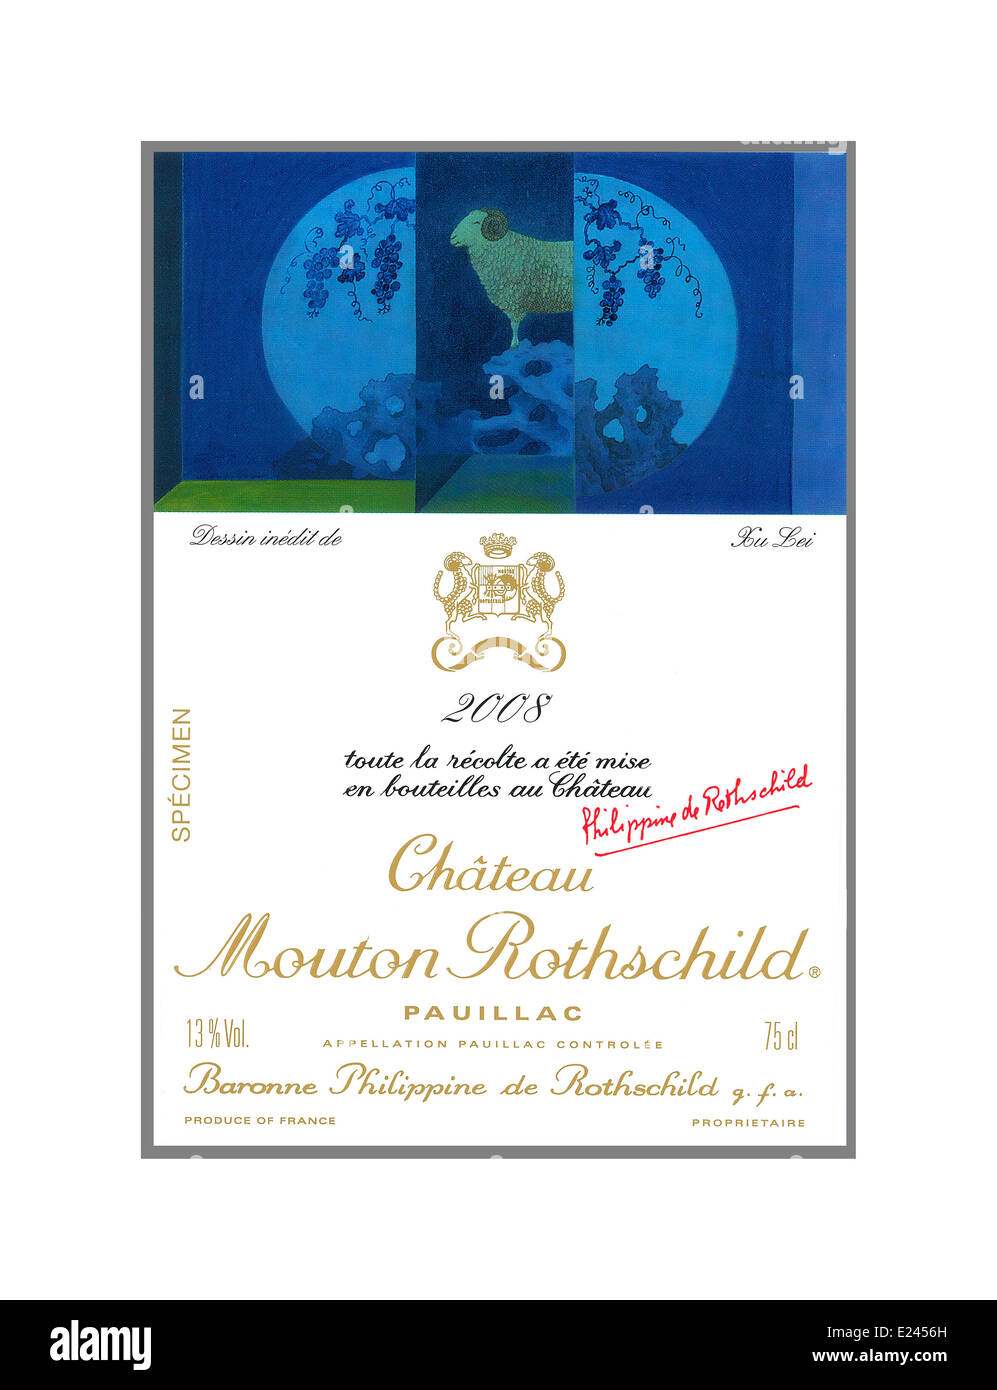 Wine bottle label for one of the greatest Bordeaux wines Chateau Mouton Rothschild 2008 Pauillac red Bordeaux wine - Stock Image